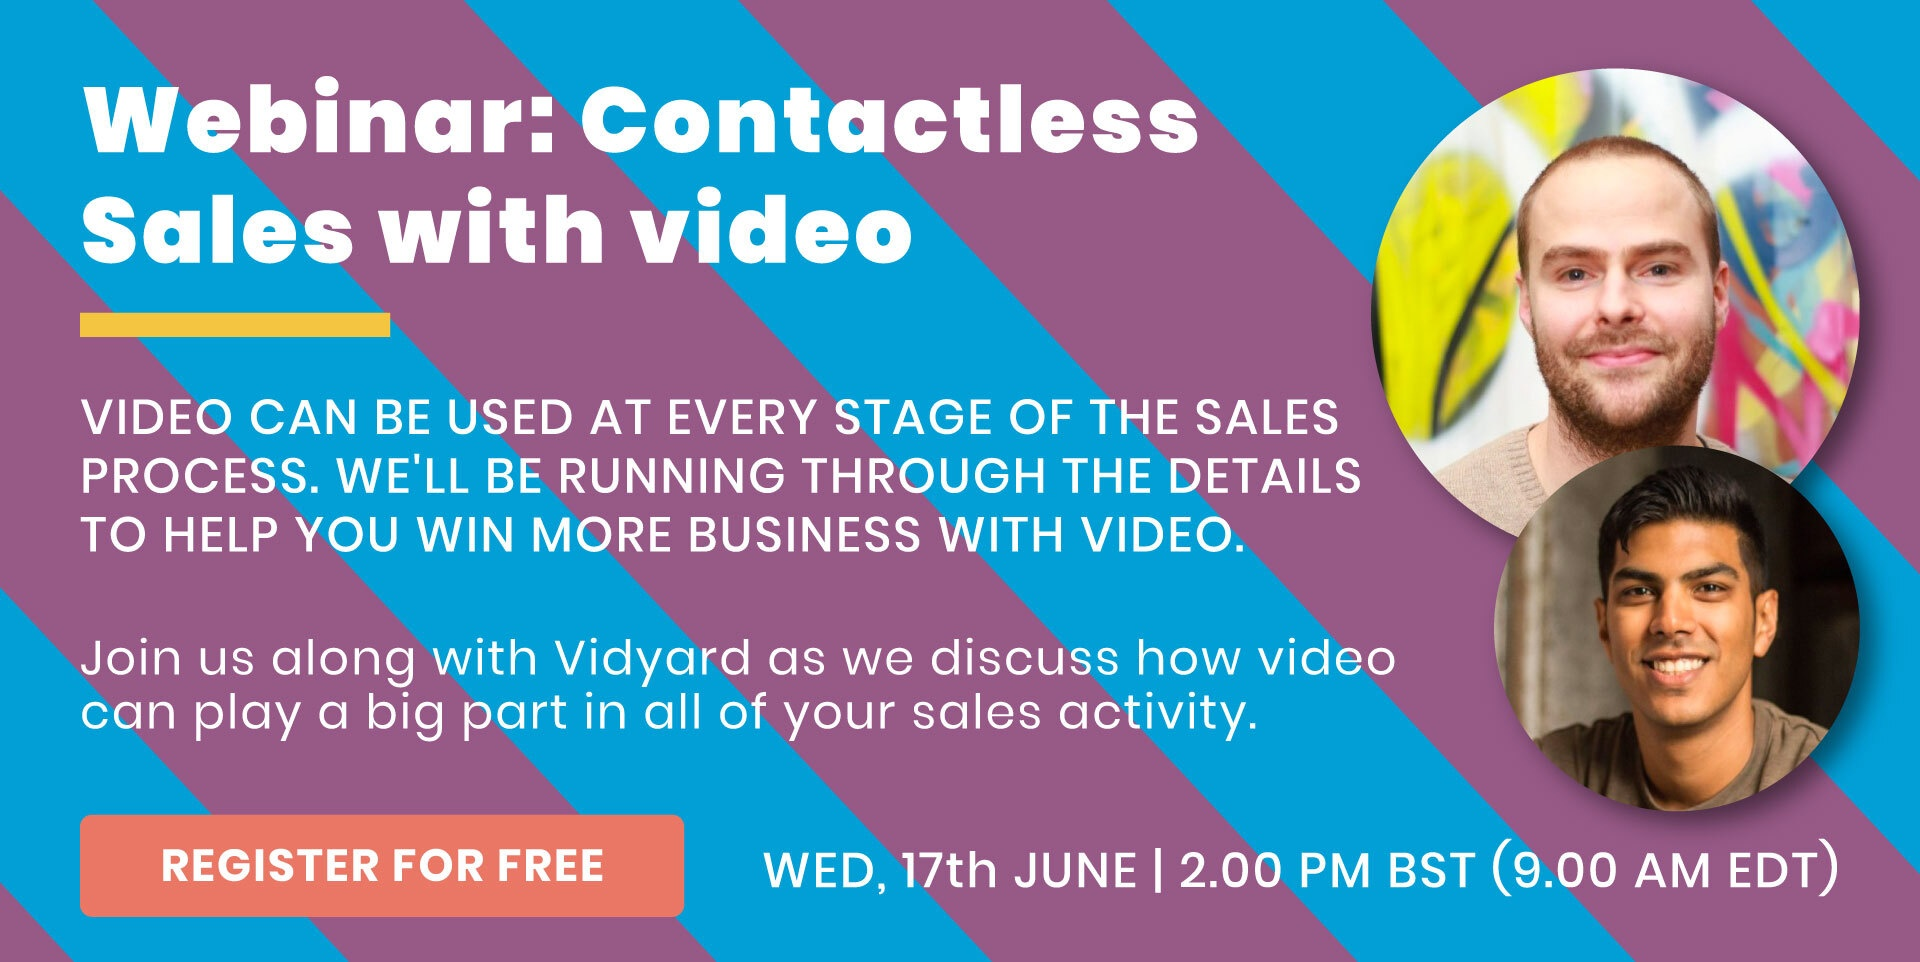 Contactless Sales Webinar